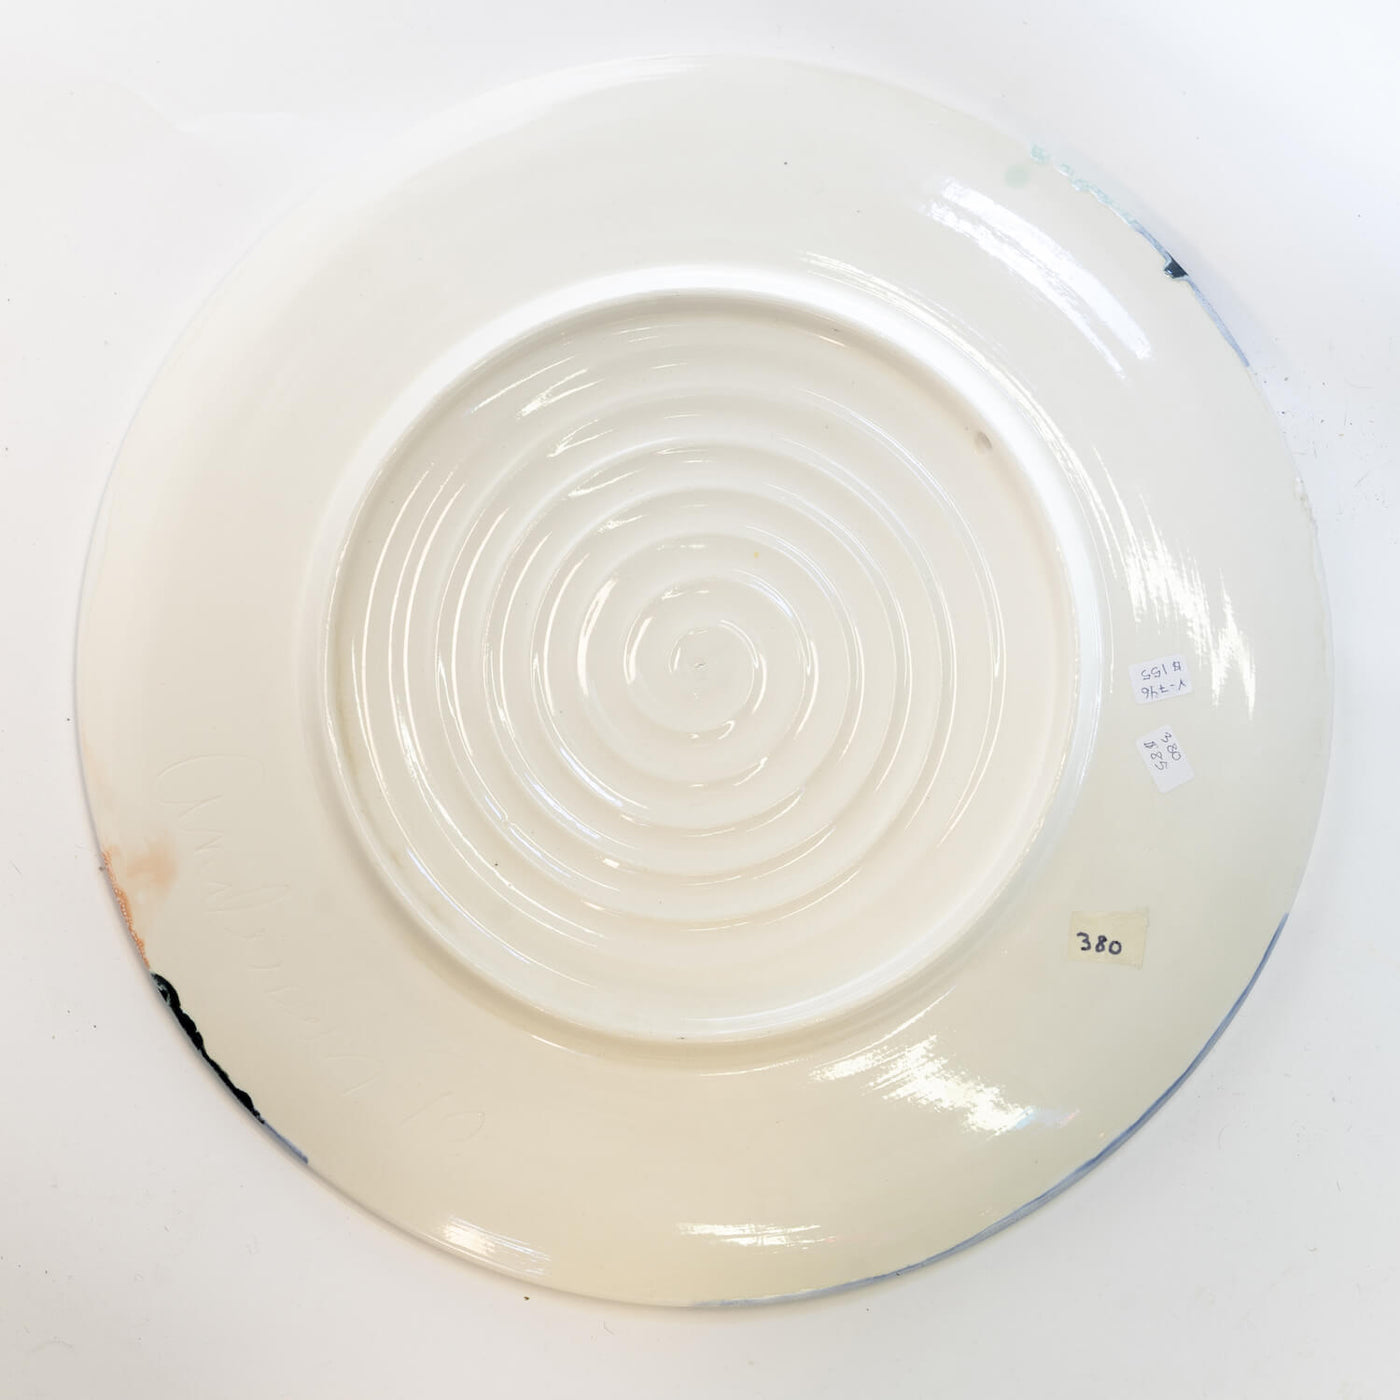 American Studio Pottery Charger, Circa 1990, Signed Andersen